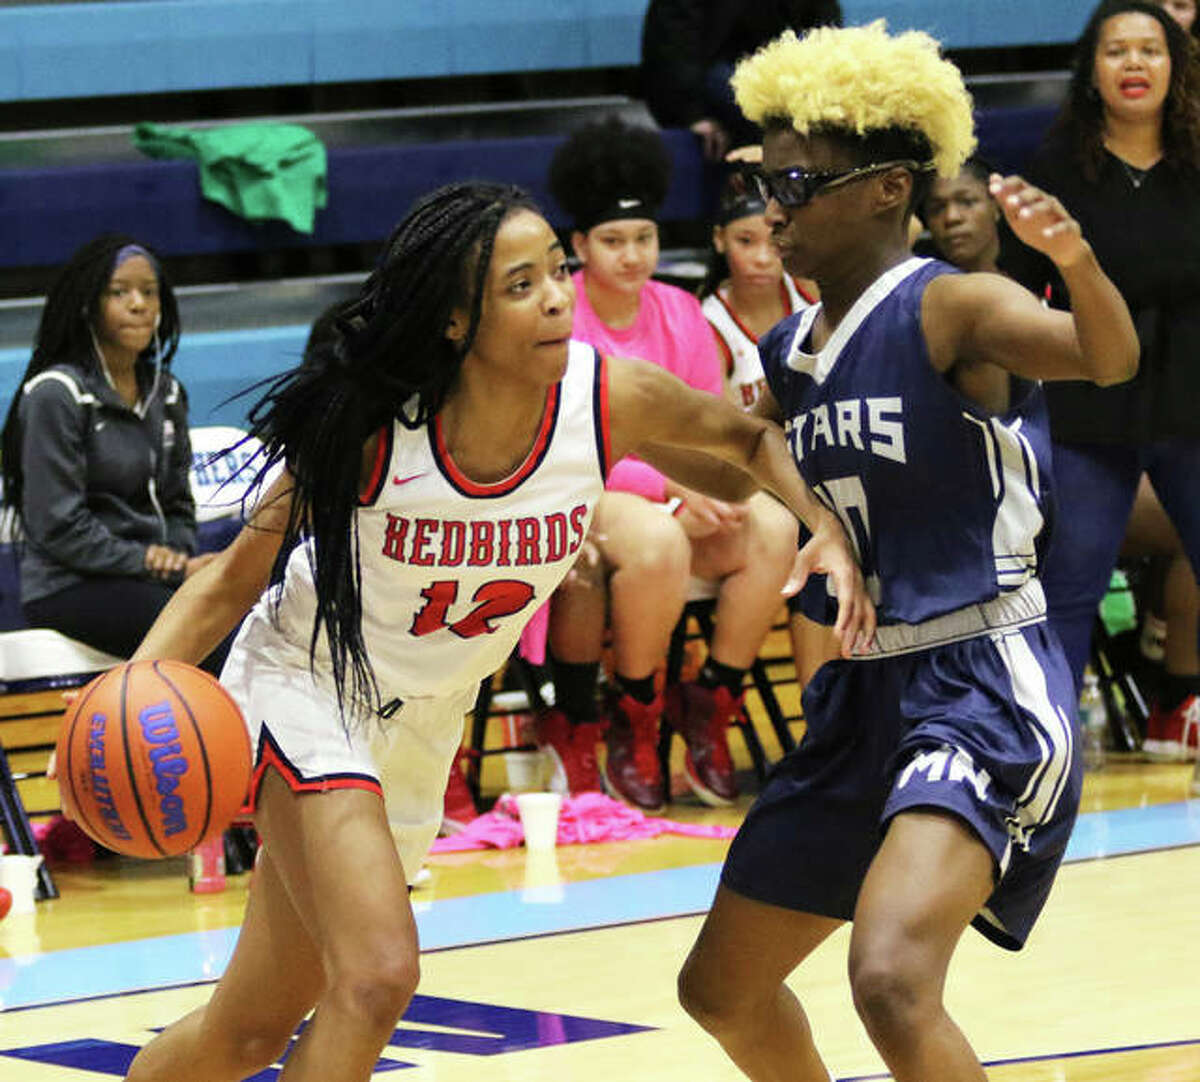 Alton's Germayia Wallace (left) drives on a McCluer North defender in a Jersey Tourney game Dec. 27 in Jerseyville. Alton ended an 11-game losing streak Thursday night with a victory at the Hillsboro (Mo.) Tourney.